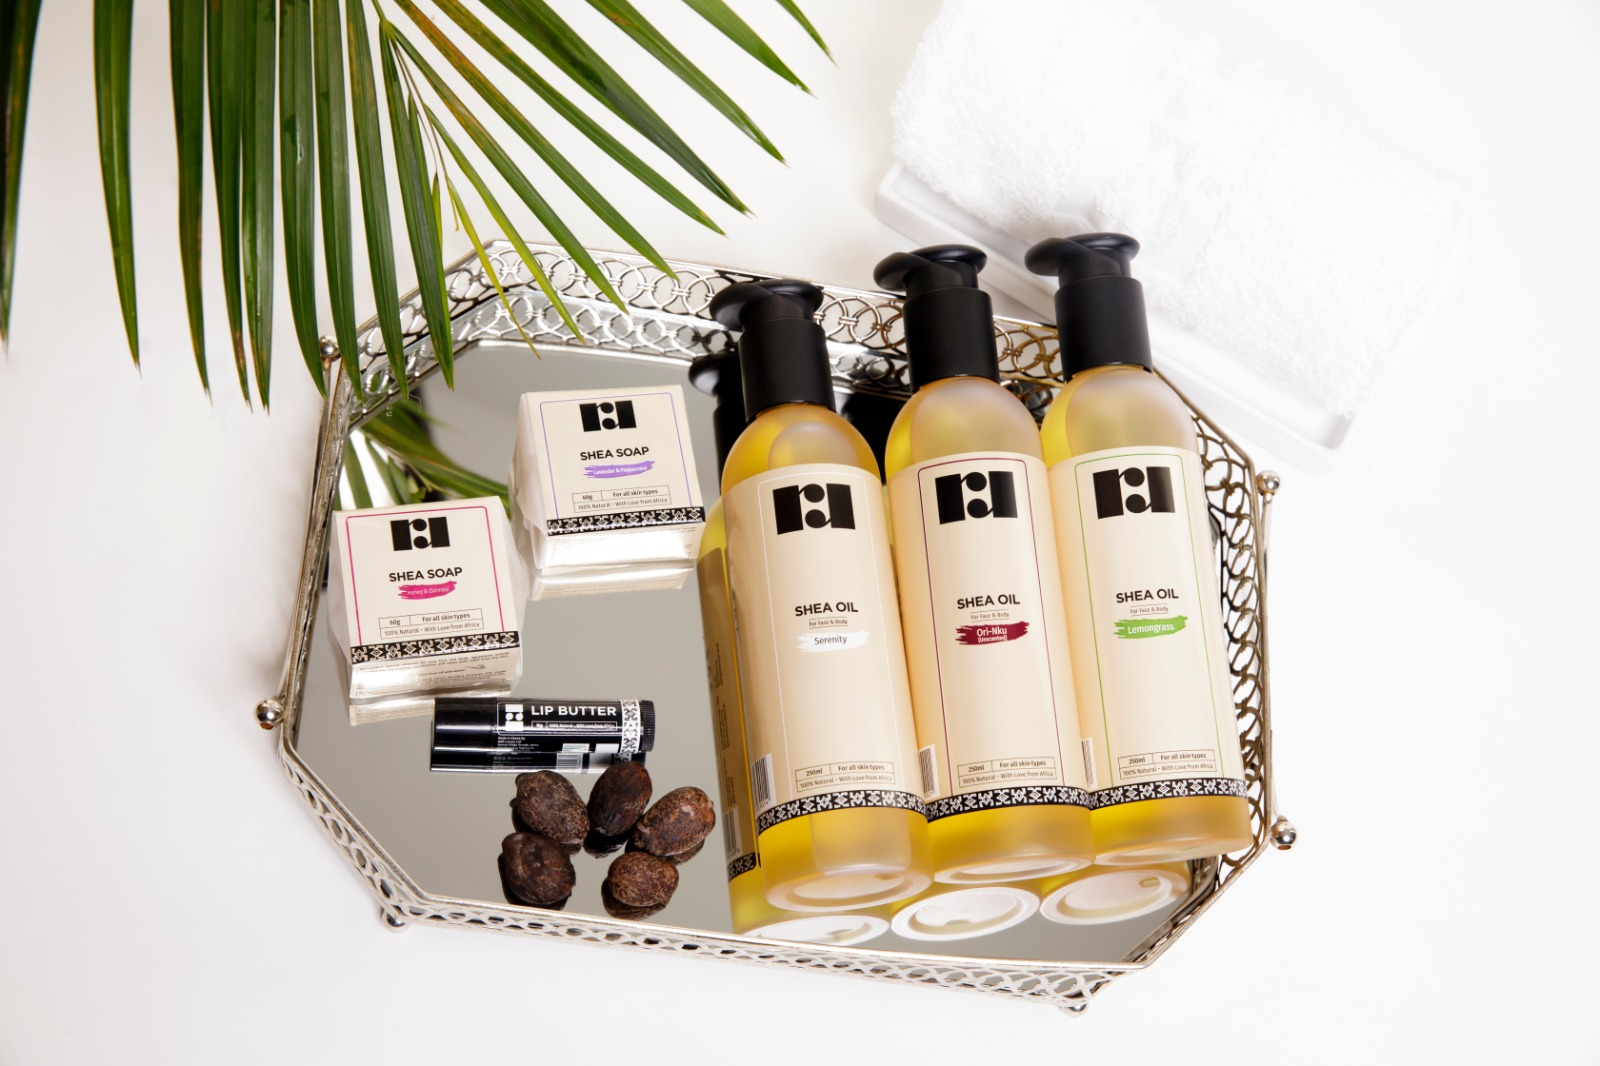 randrluxury-black-owned-business-female-beauty-african-skincare-shea-baobab-oil